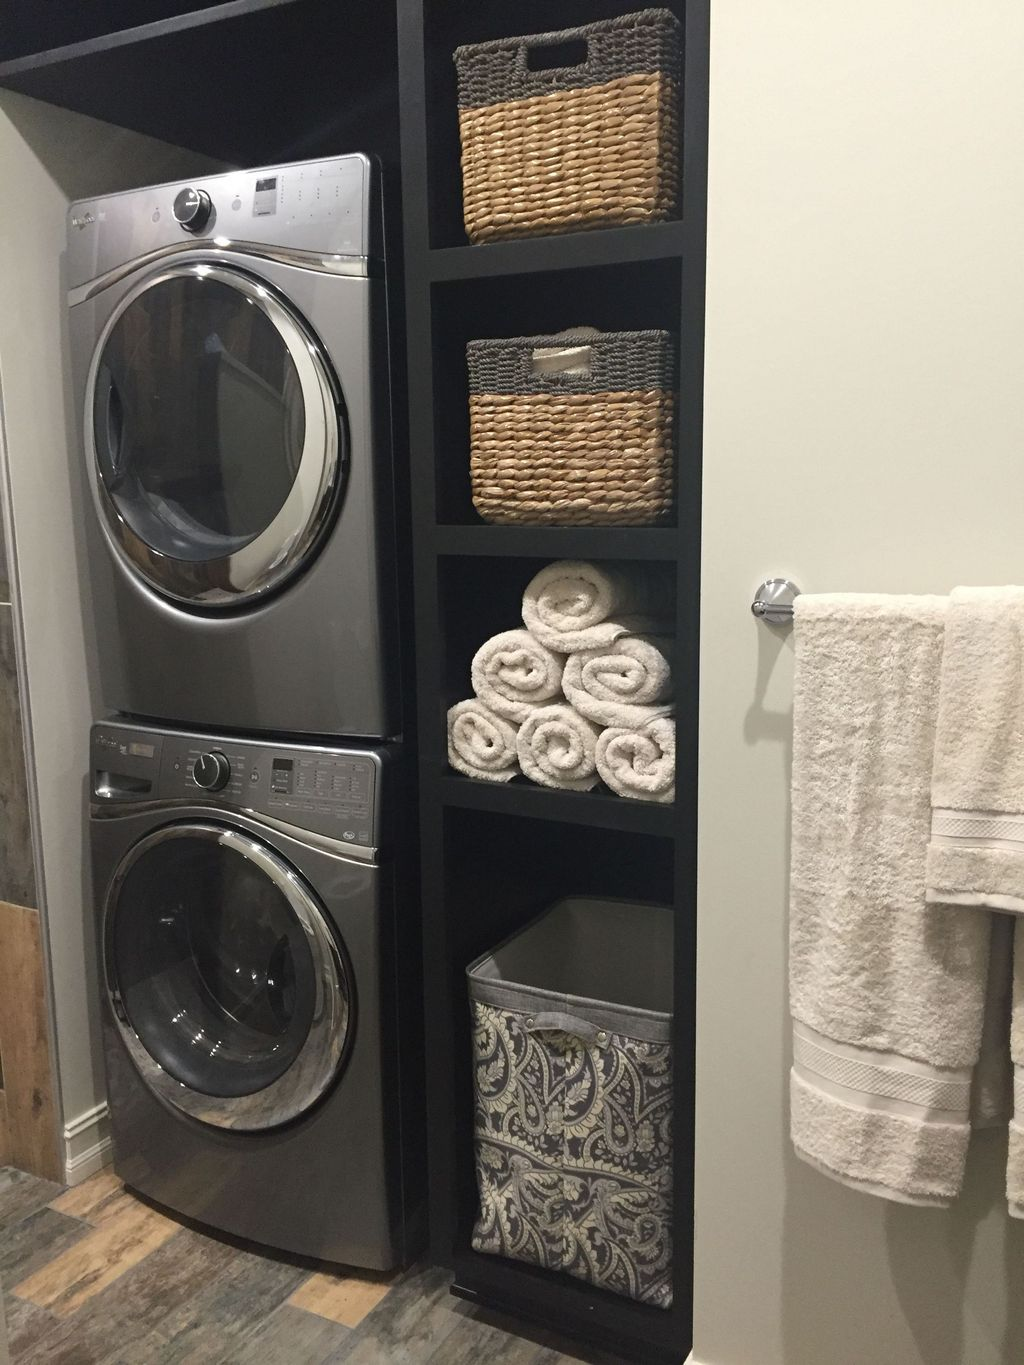 Inspiring Small Laundry Room Design And Decor Ideas 15